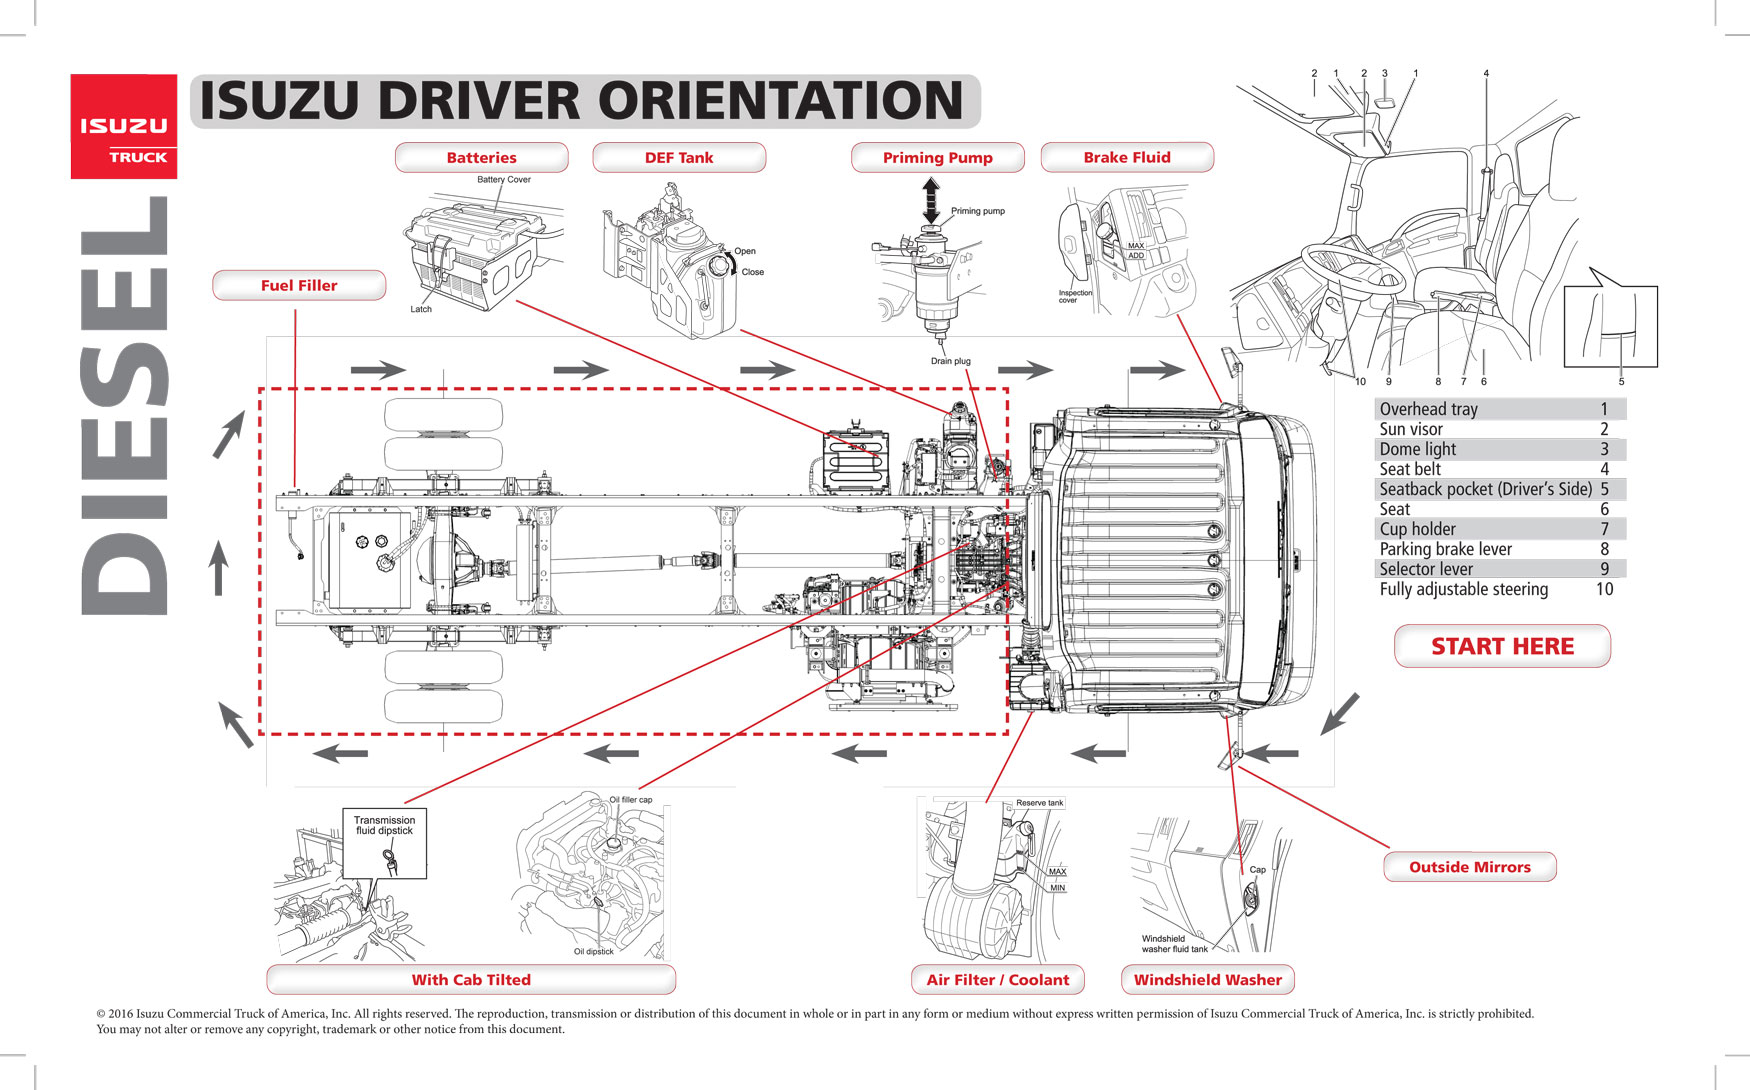 Specials Monarch Truck Box Lift Gate Wiring Diagram Isuzu Driver Orientation Chassis And Dashboard